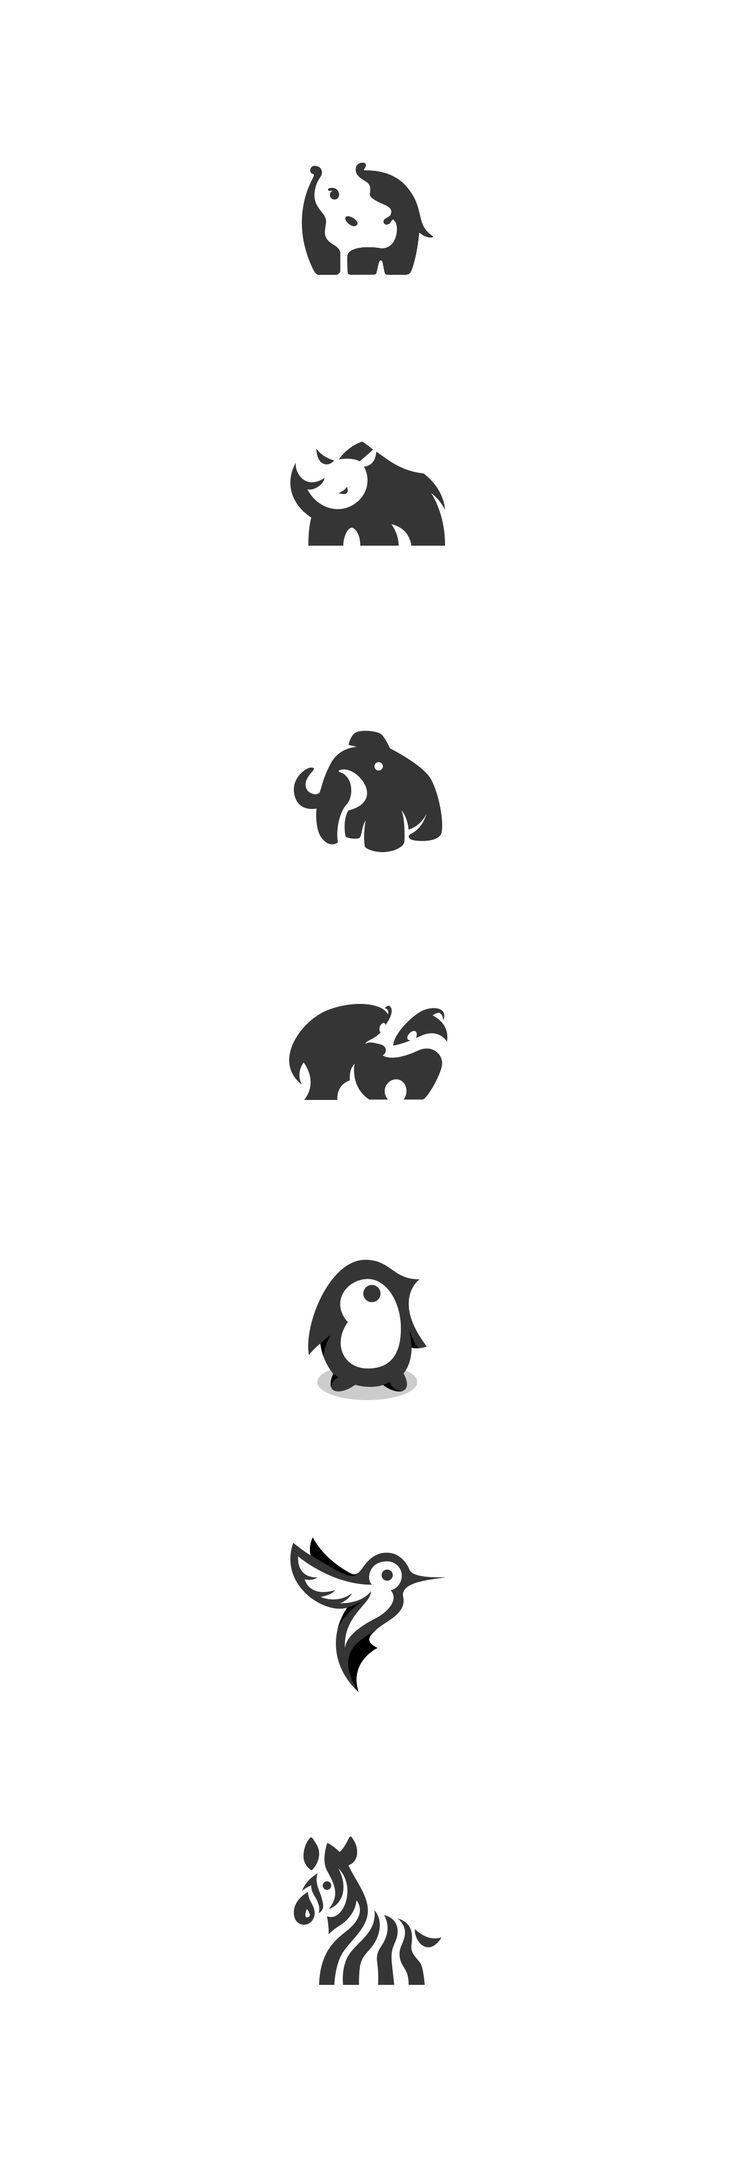 Tatto Ideas 2017  Here are some of my selected negative space animal logo designs. #negative